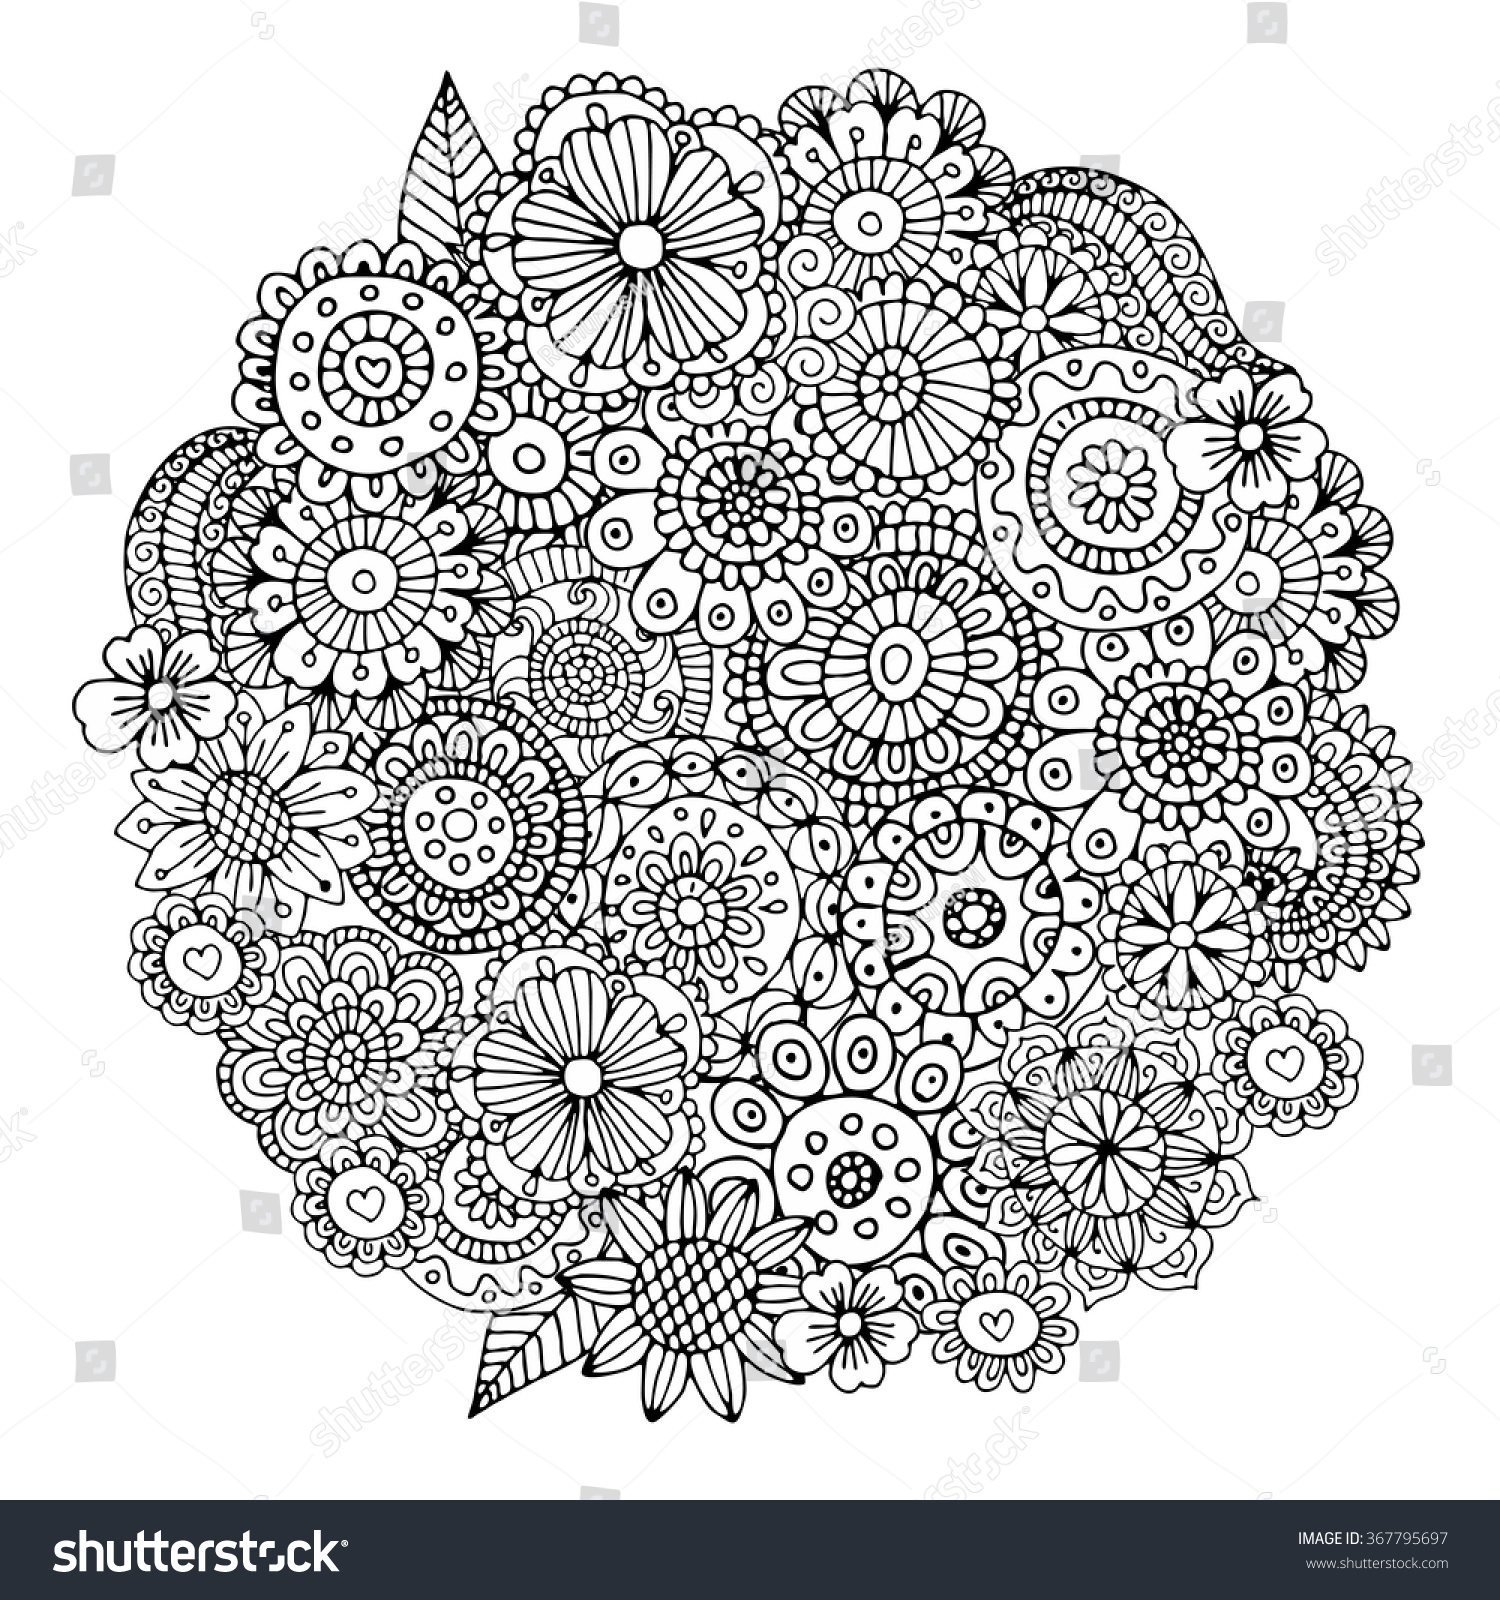 Flowers Circle Zentangle Pattern Coloring Book Stock Vector